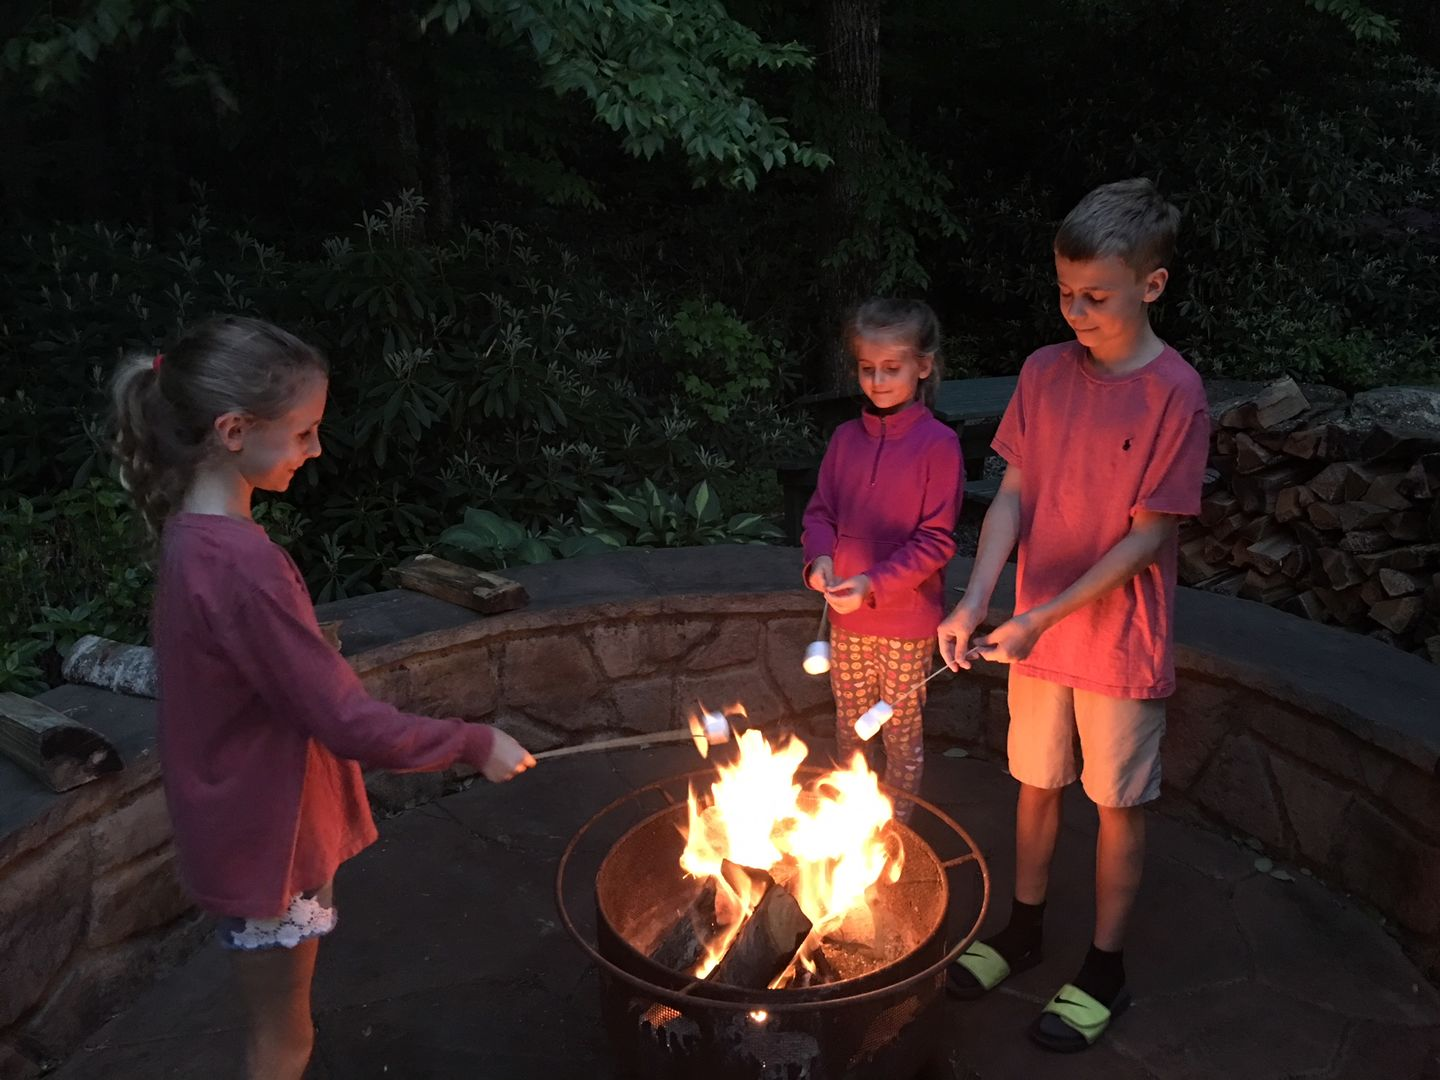 Roast some marshmellows or make a smore after a long day on the river or slopes